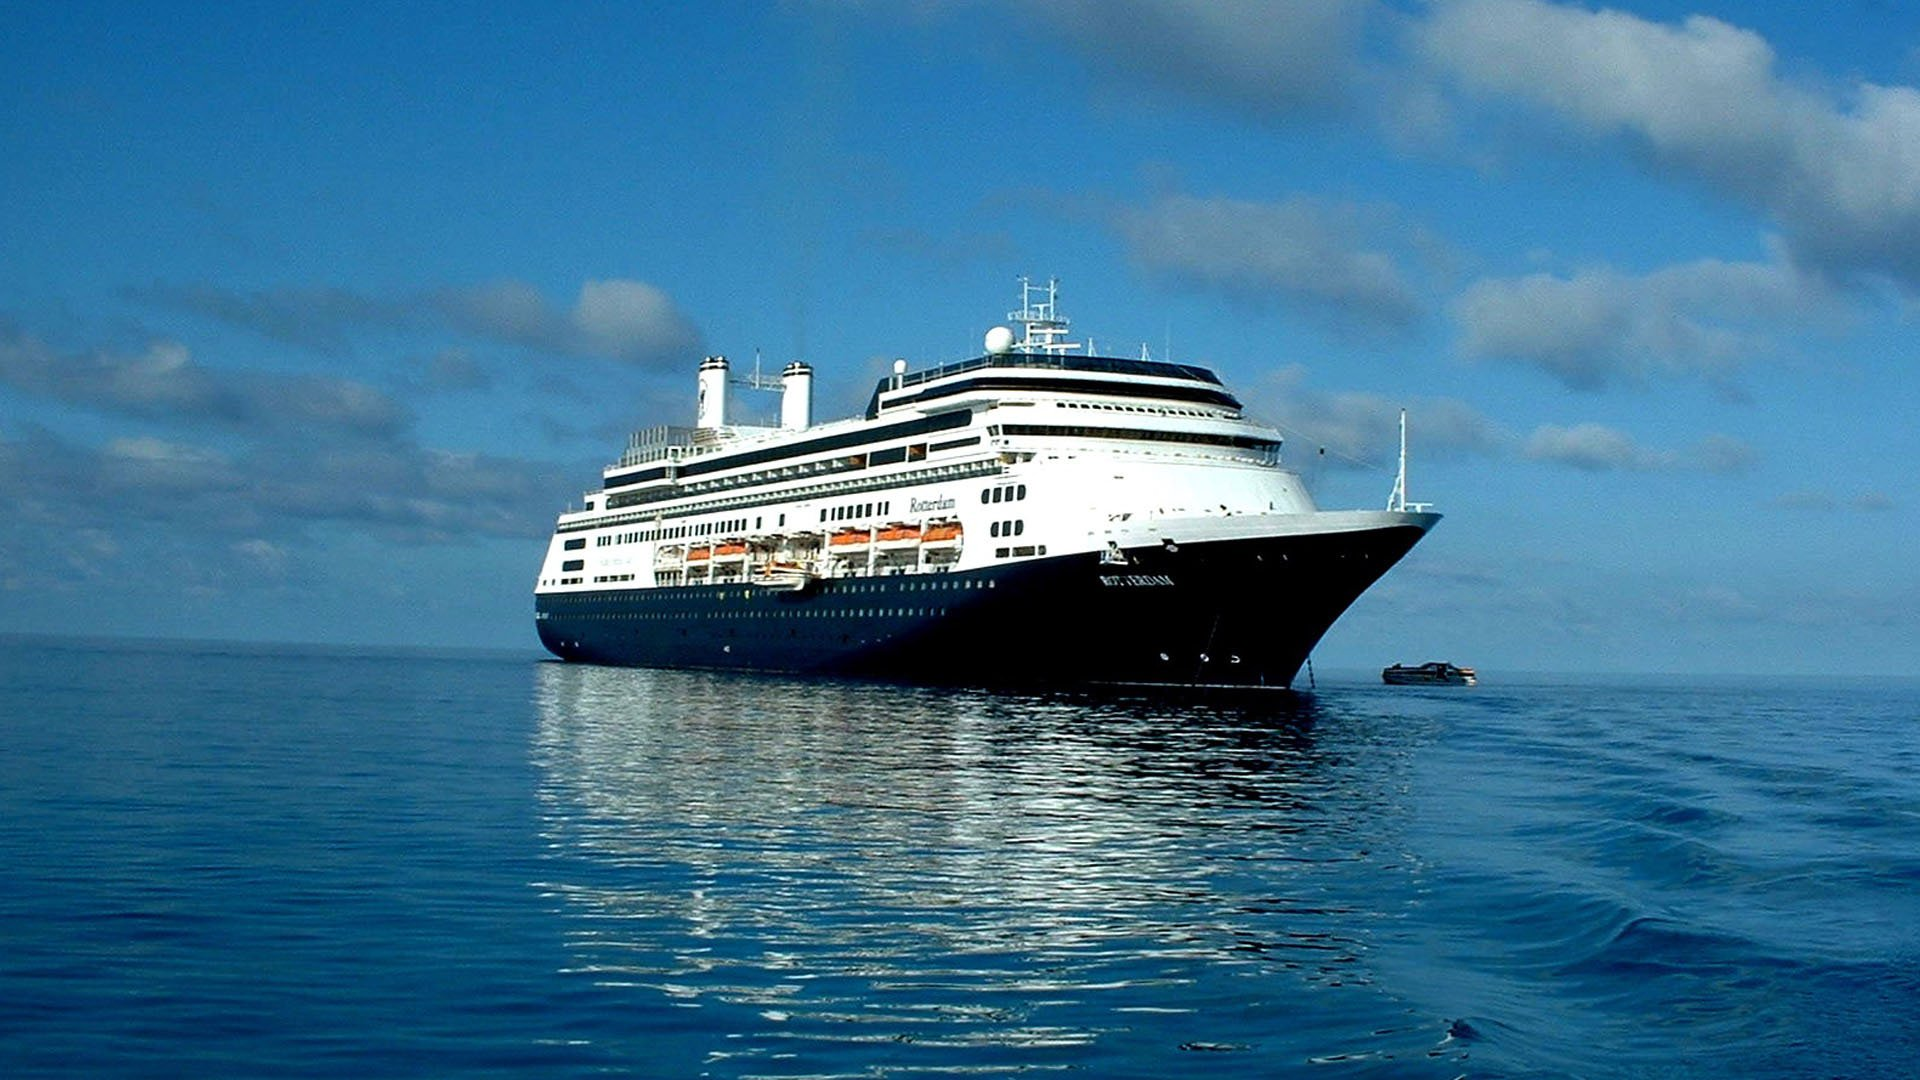 Luxury Cruise Ship Desktop Background With Resolutions 19201080 1920x1080